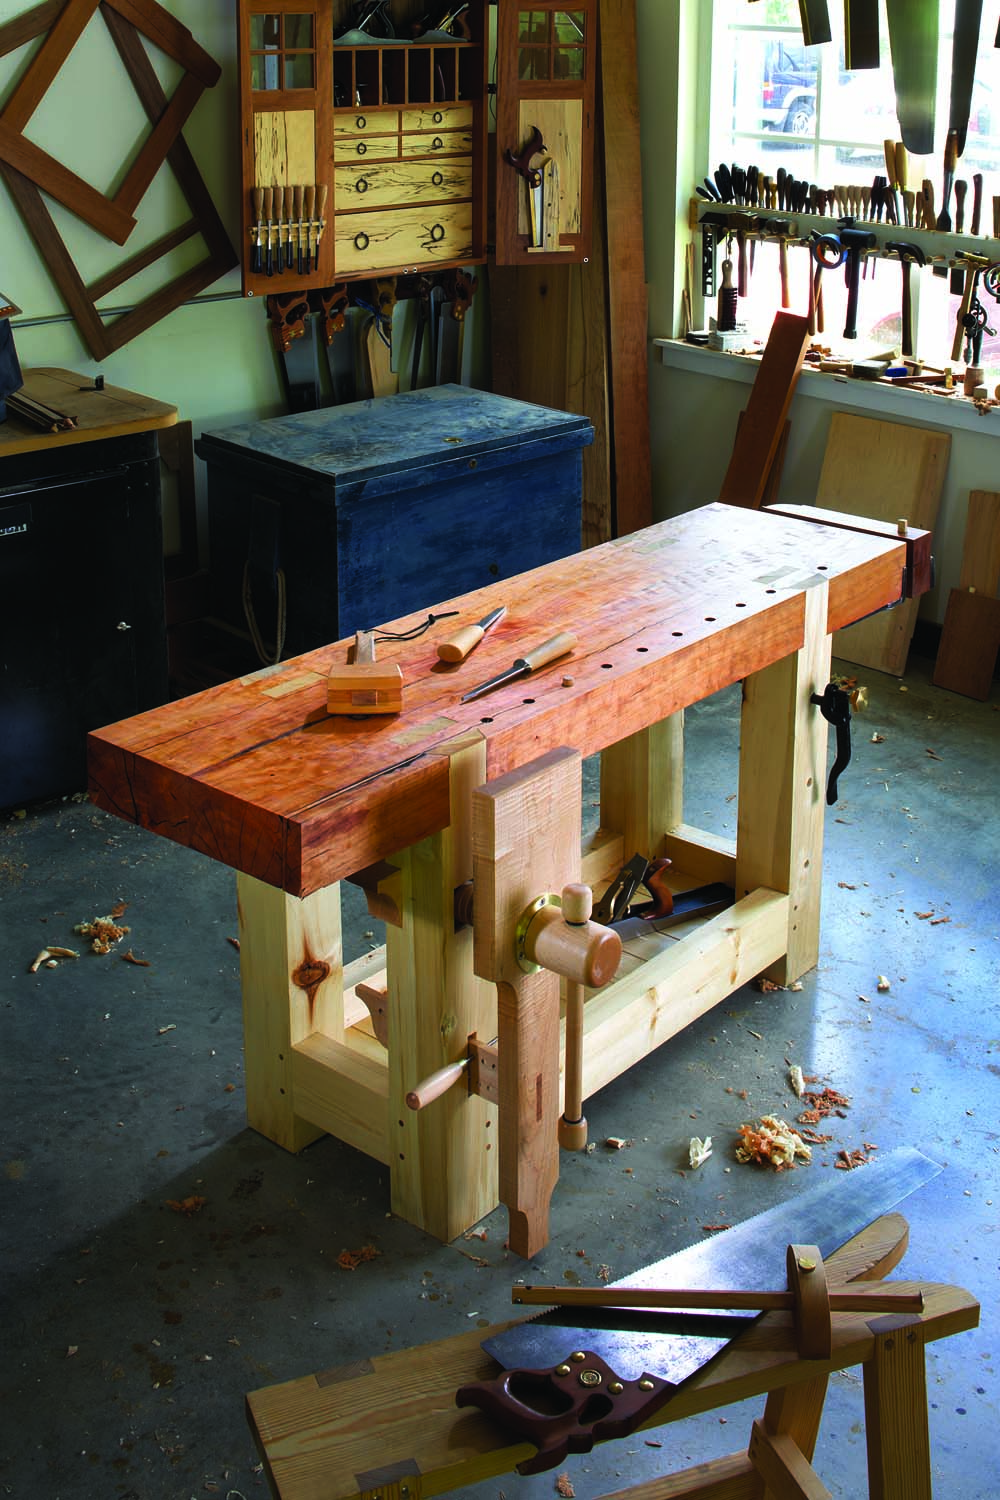 Woodworking Bench For Sale Craigslist